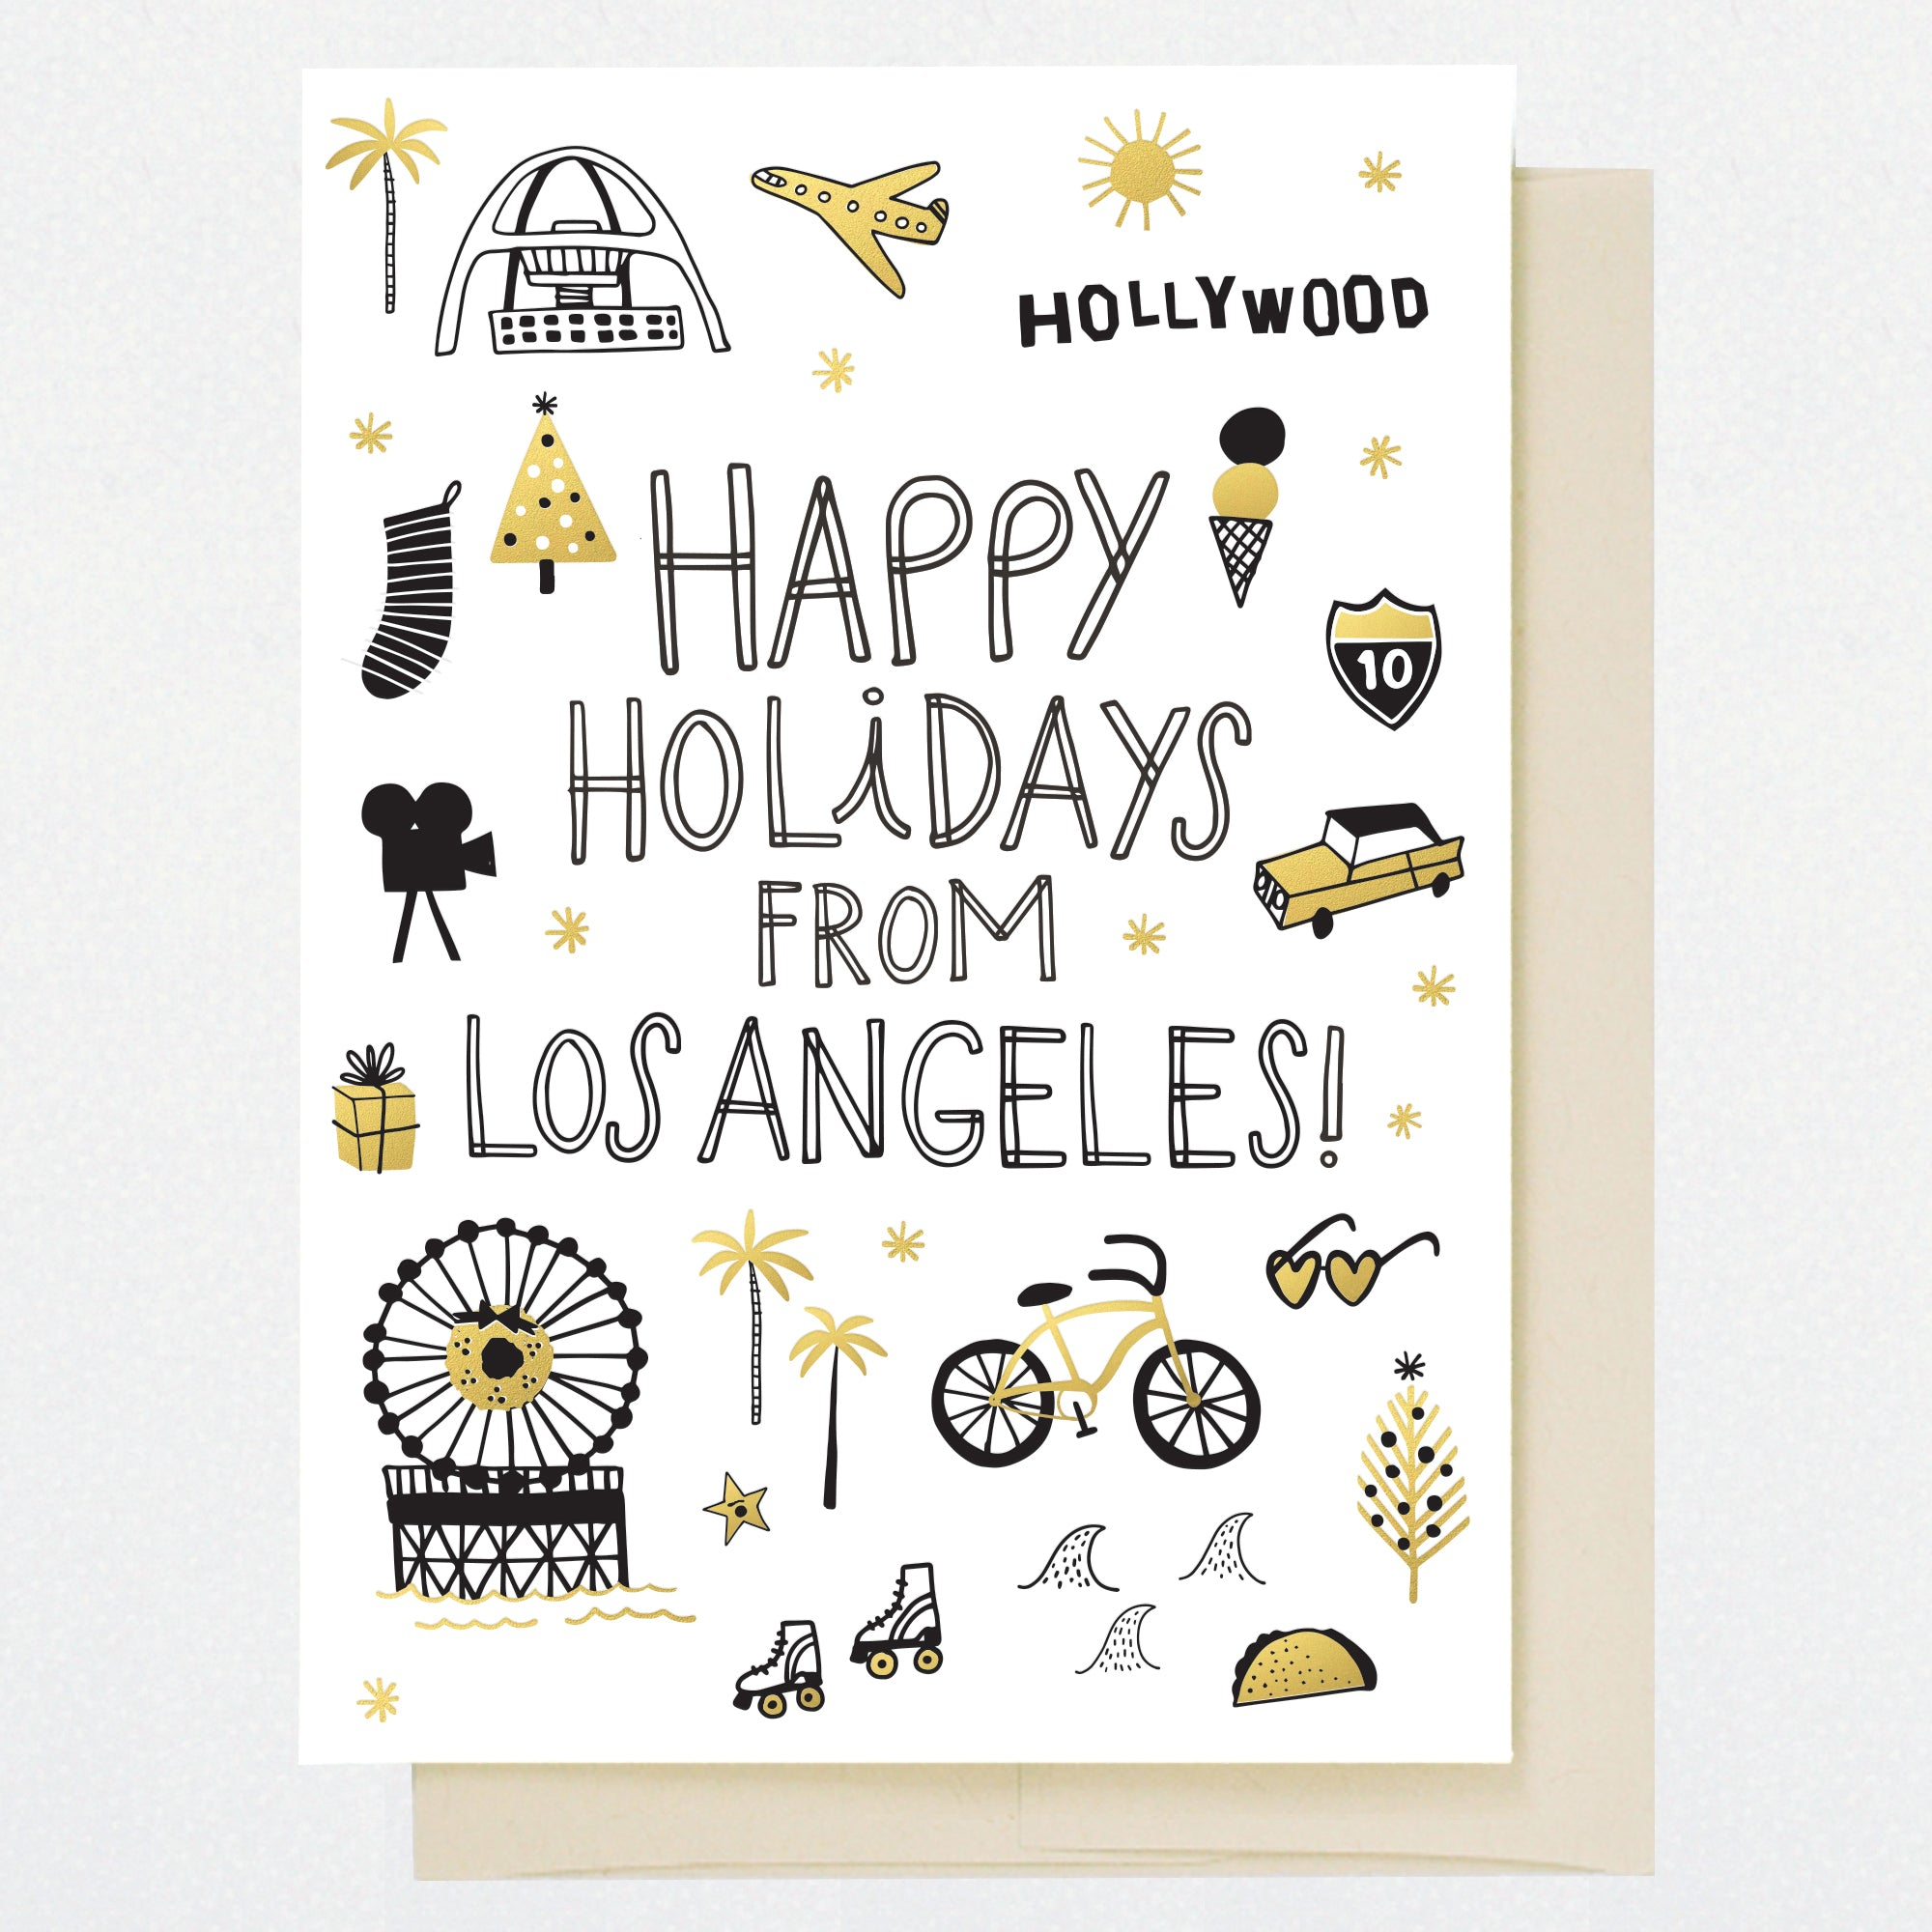 Los Angeles Holiday Greeting Card Hellolucky